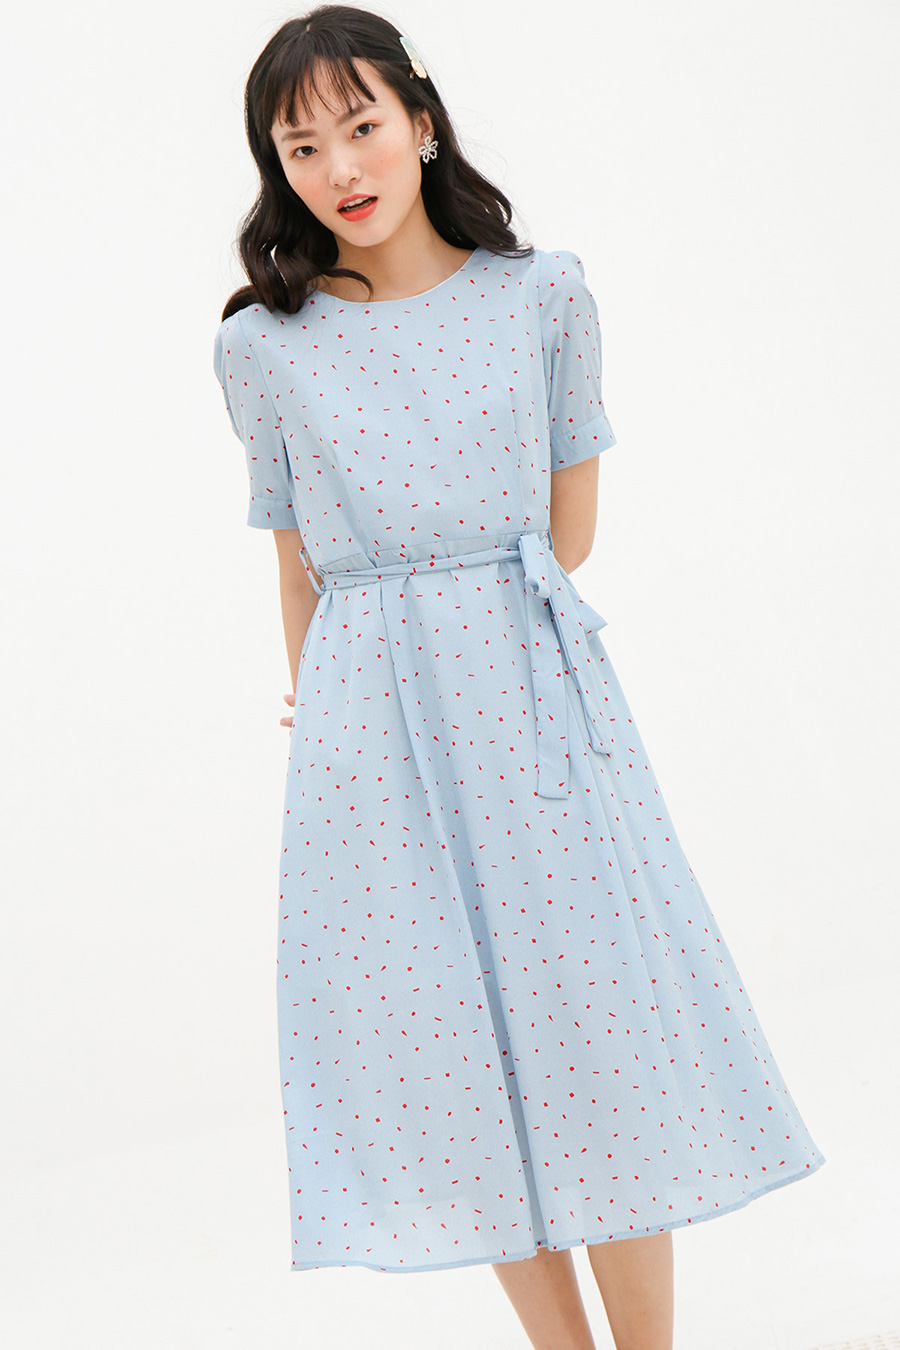 MARLENE DRESS - PERRY DOTTY